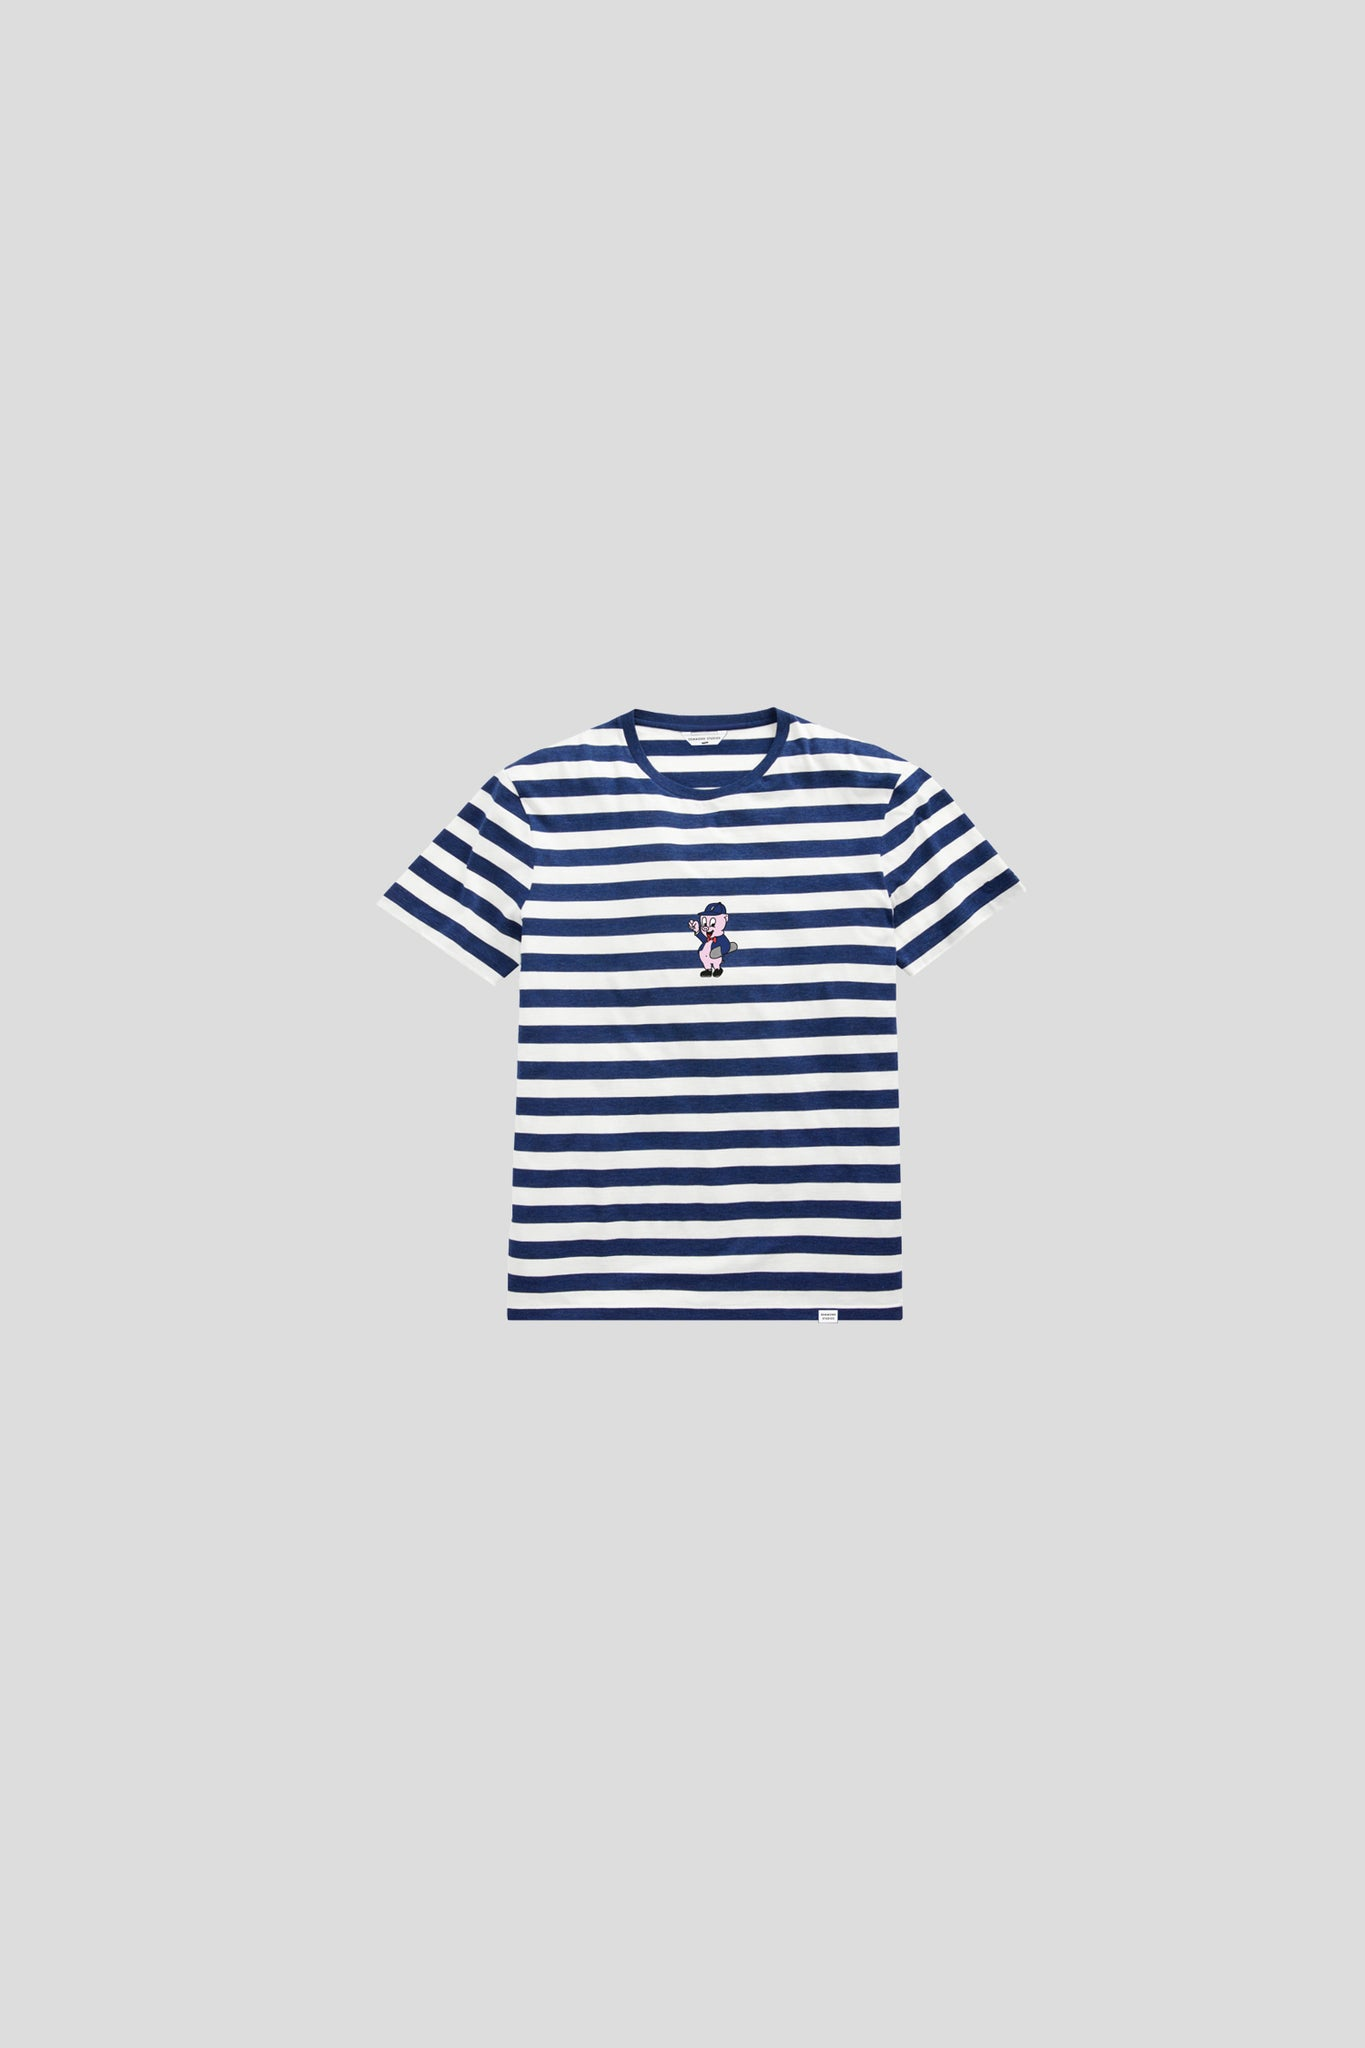 HORIZONTAL STRIPES BLUE